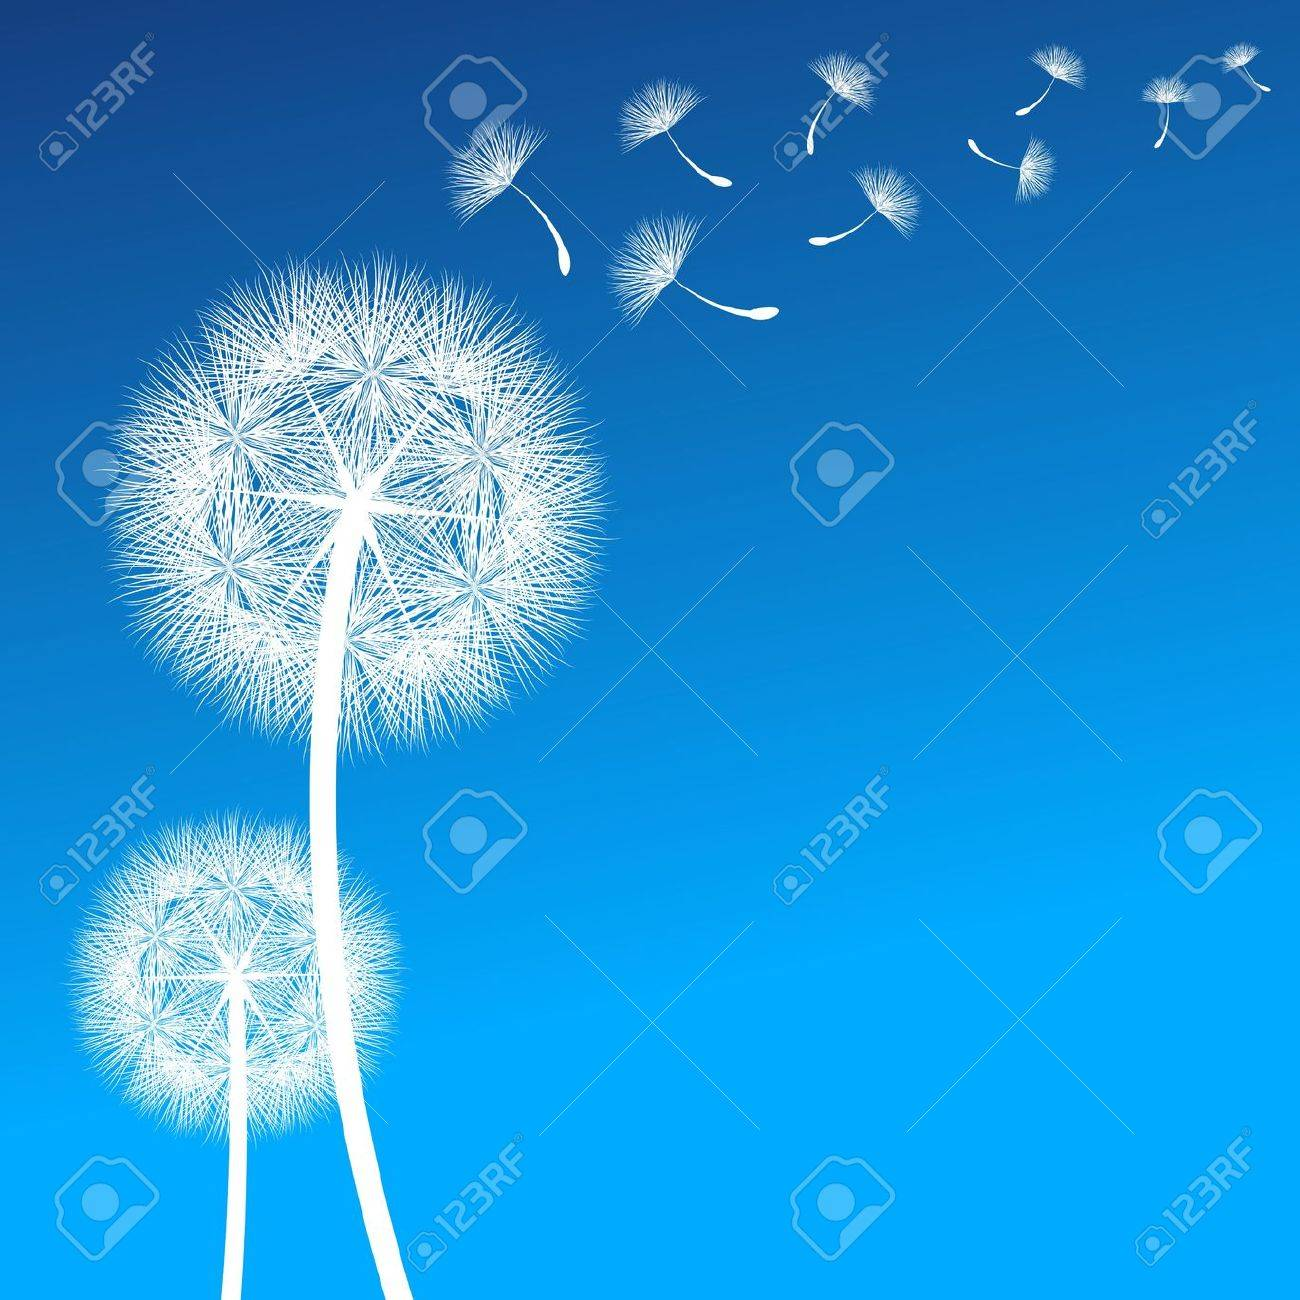 vector dandelion on a wind loses the integrity - 22238213